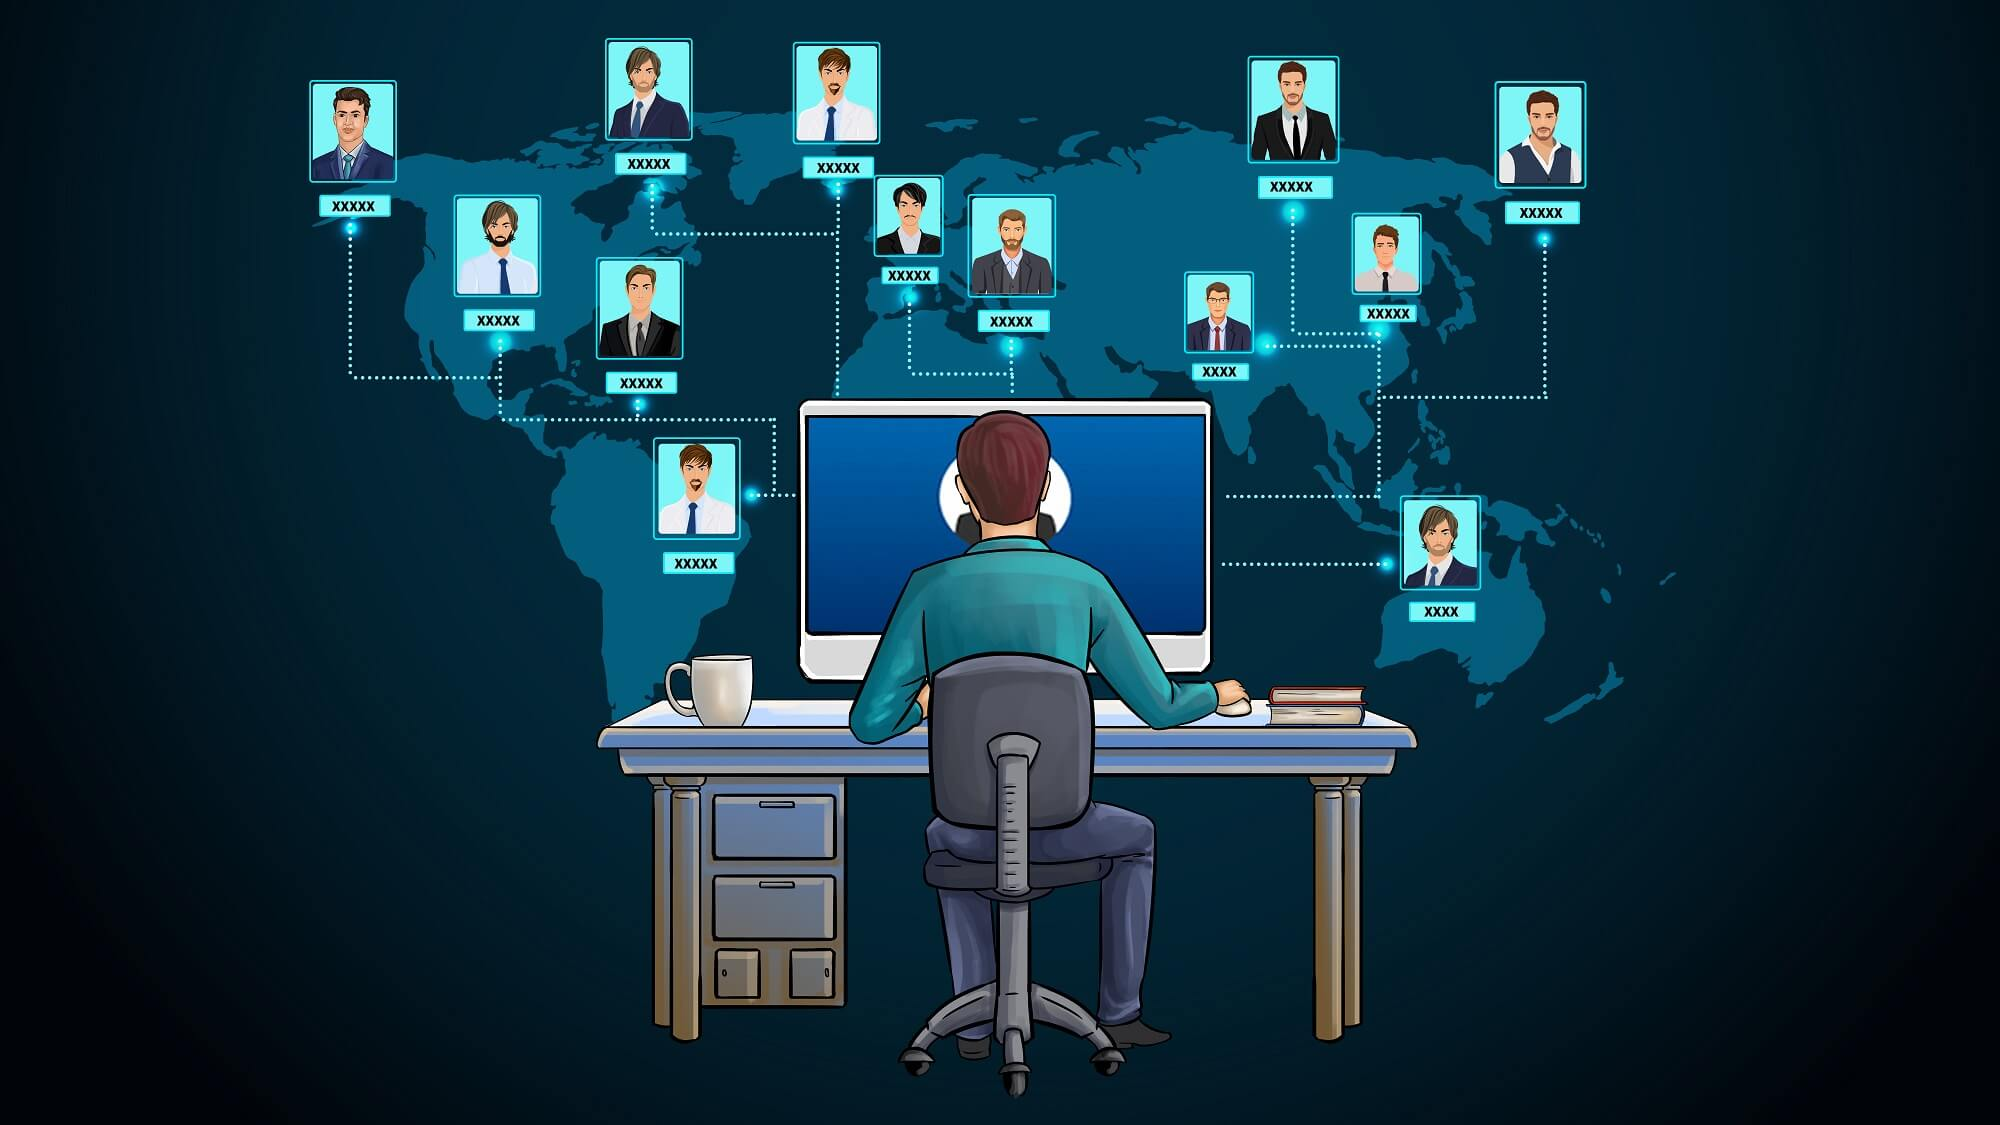 5 Ways Outsourcing to India is Less Risky than Hiring Locally